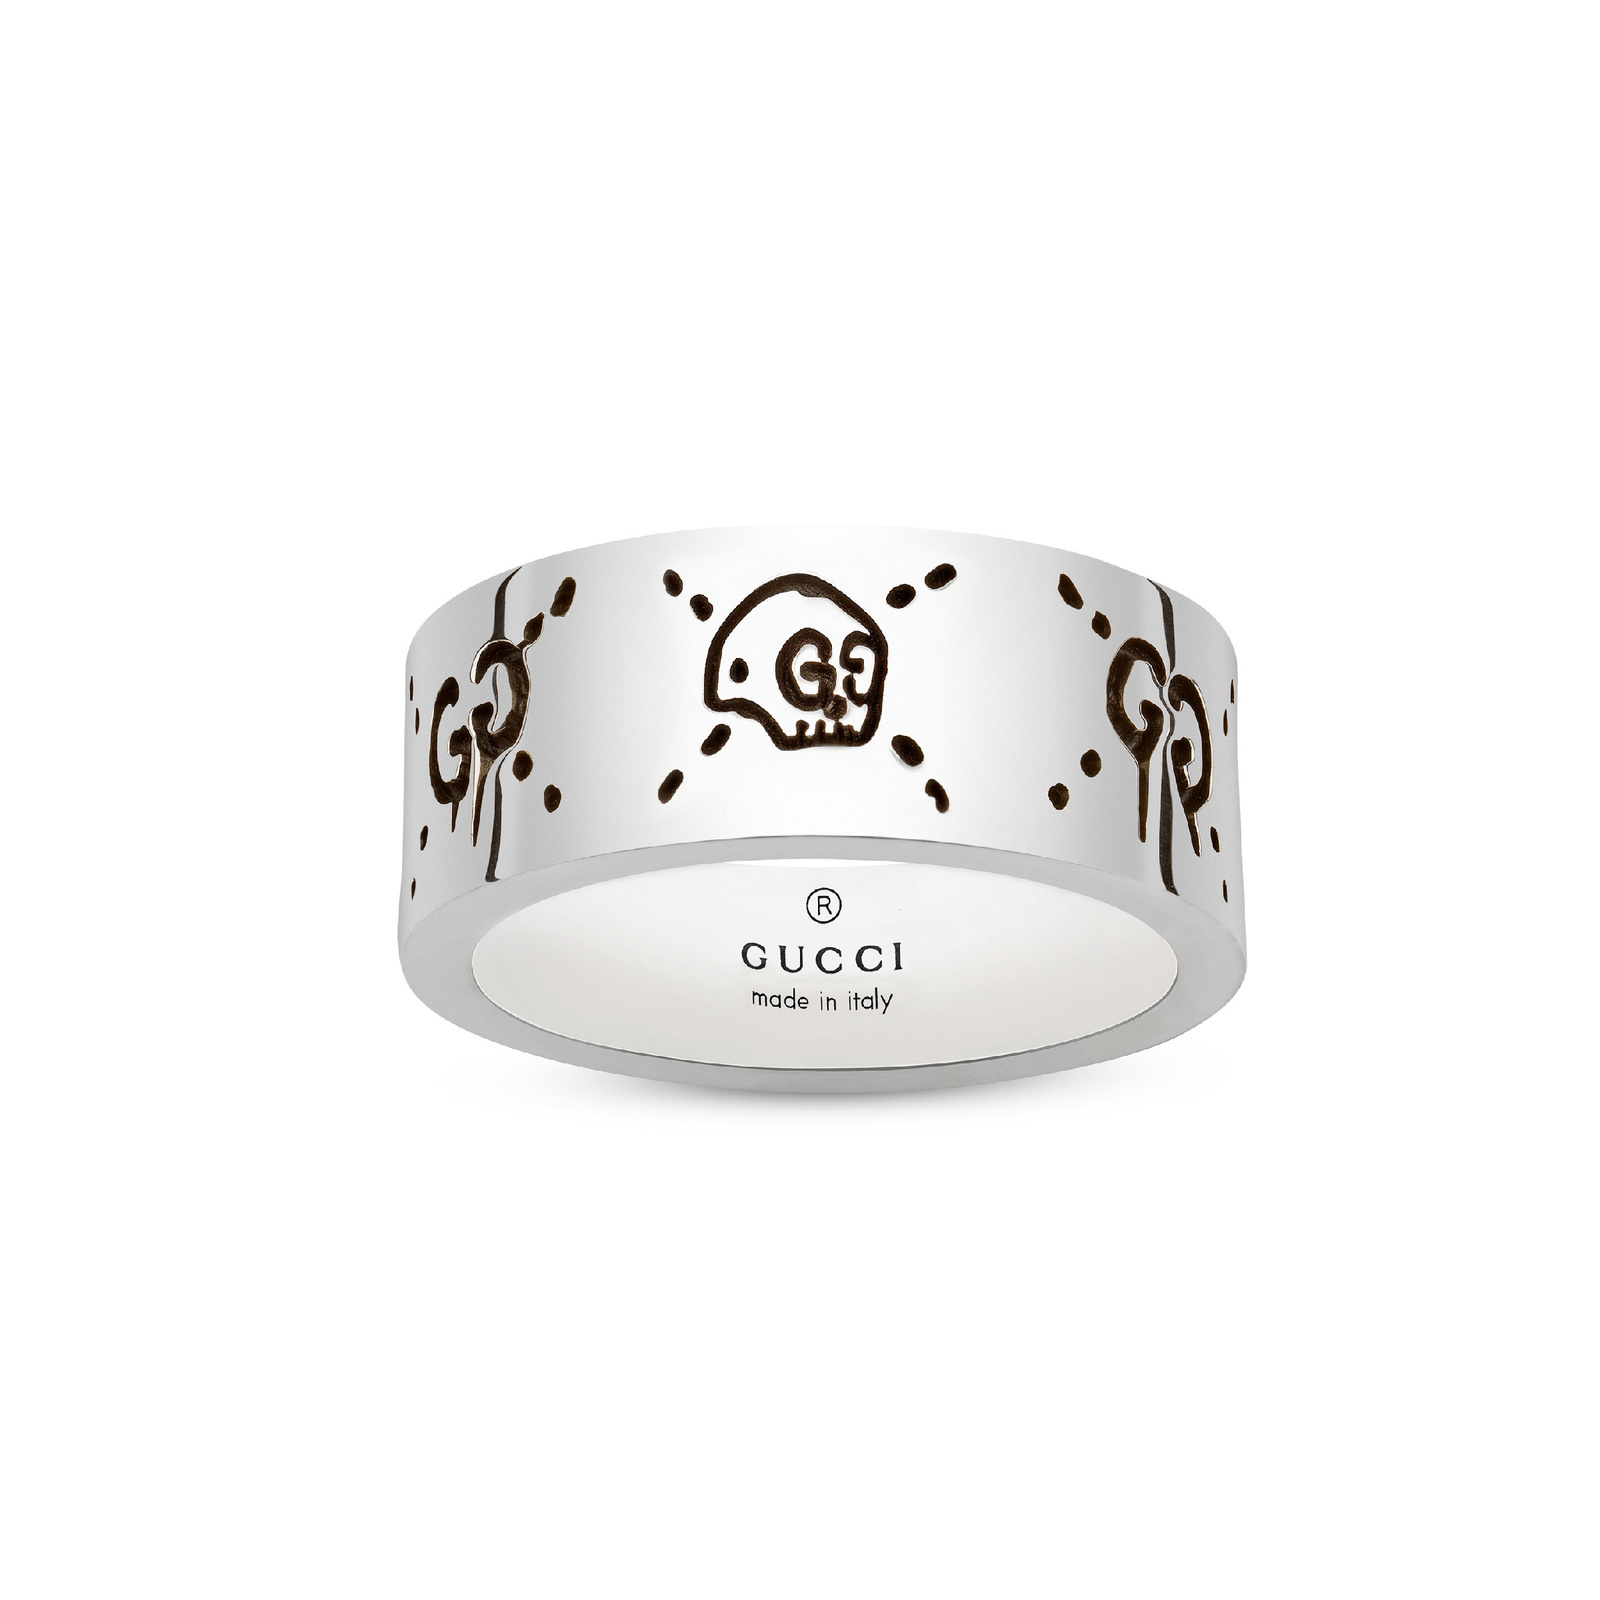 Gucci Ghost 9mm Ring in Silver - Ring Size O